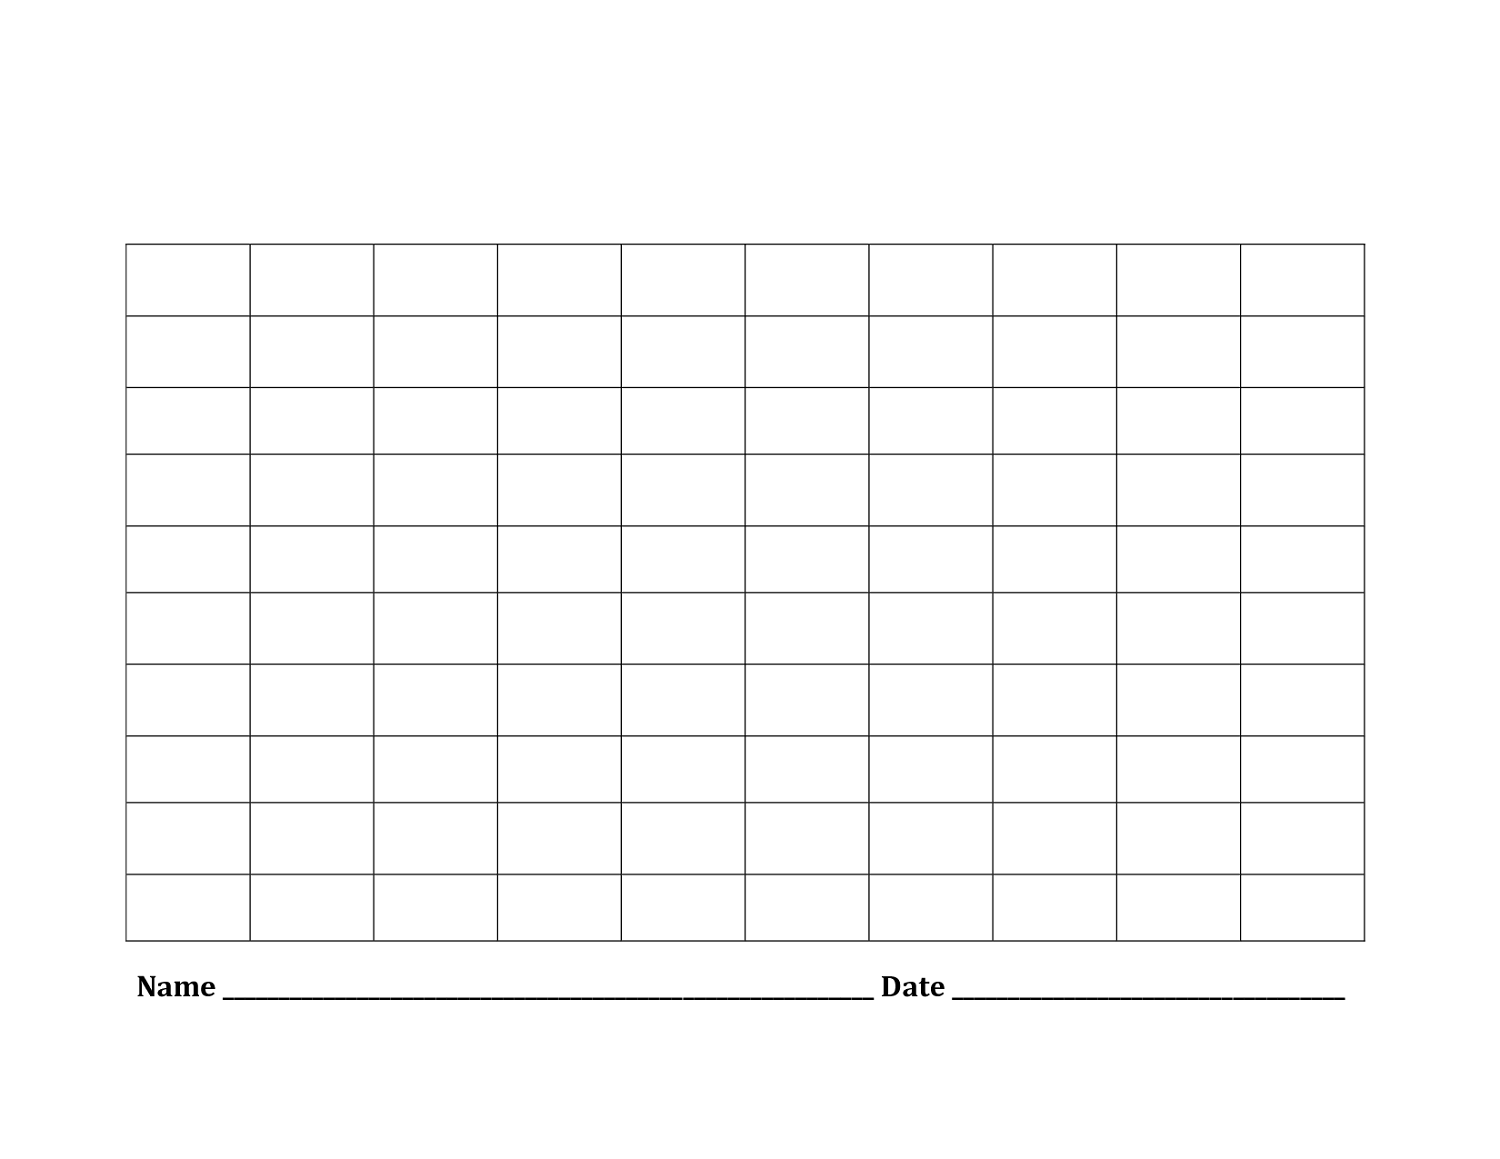 blank number chart 1-100 easy